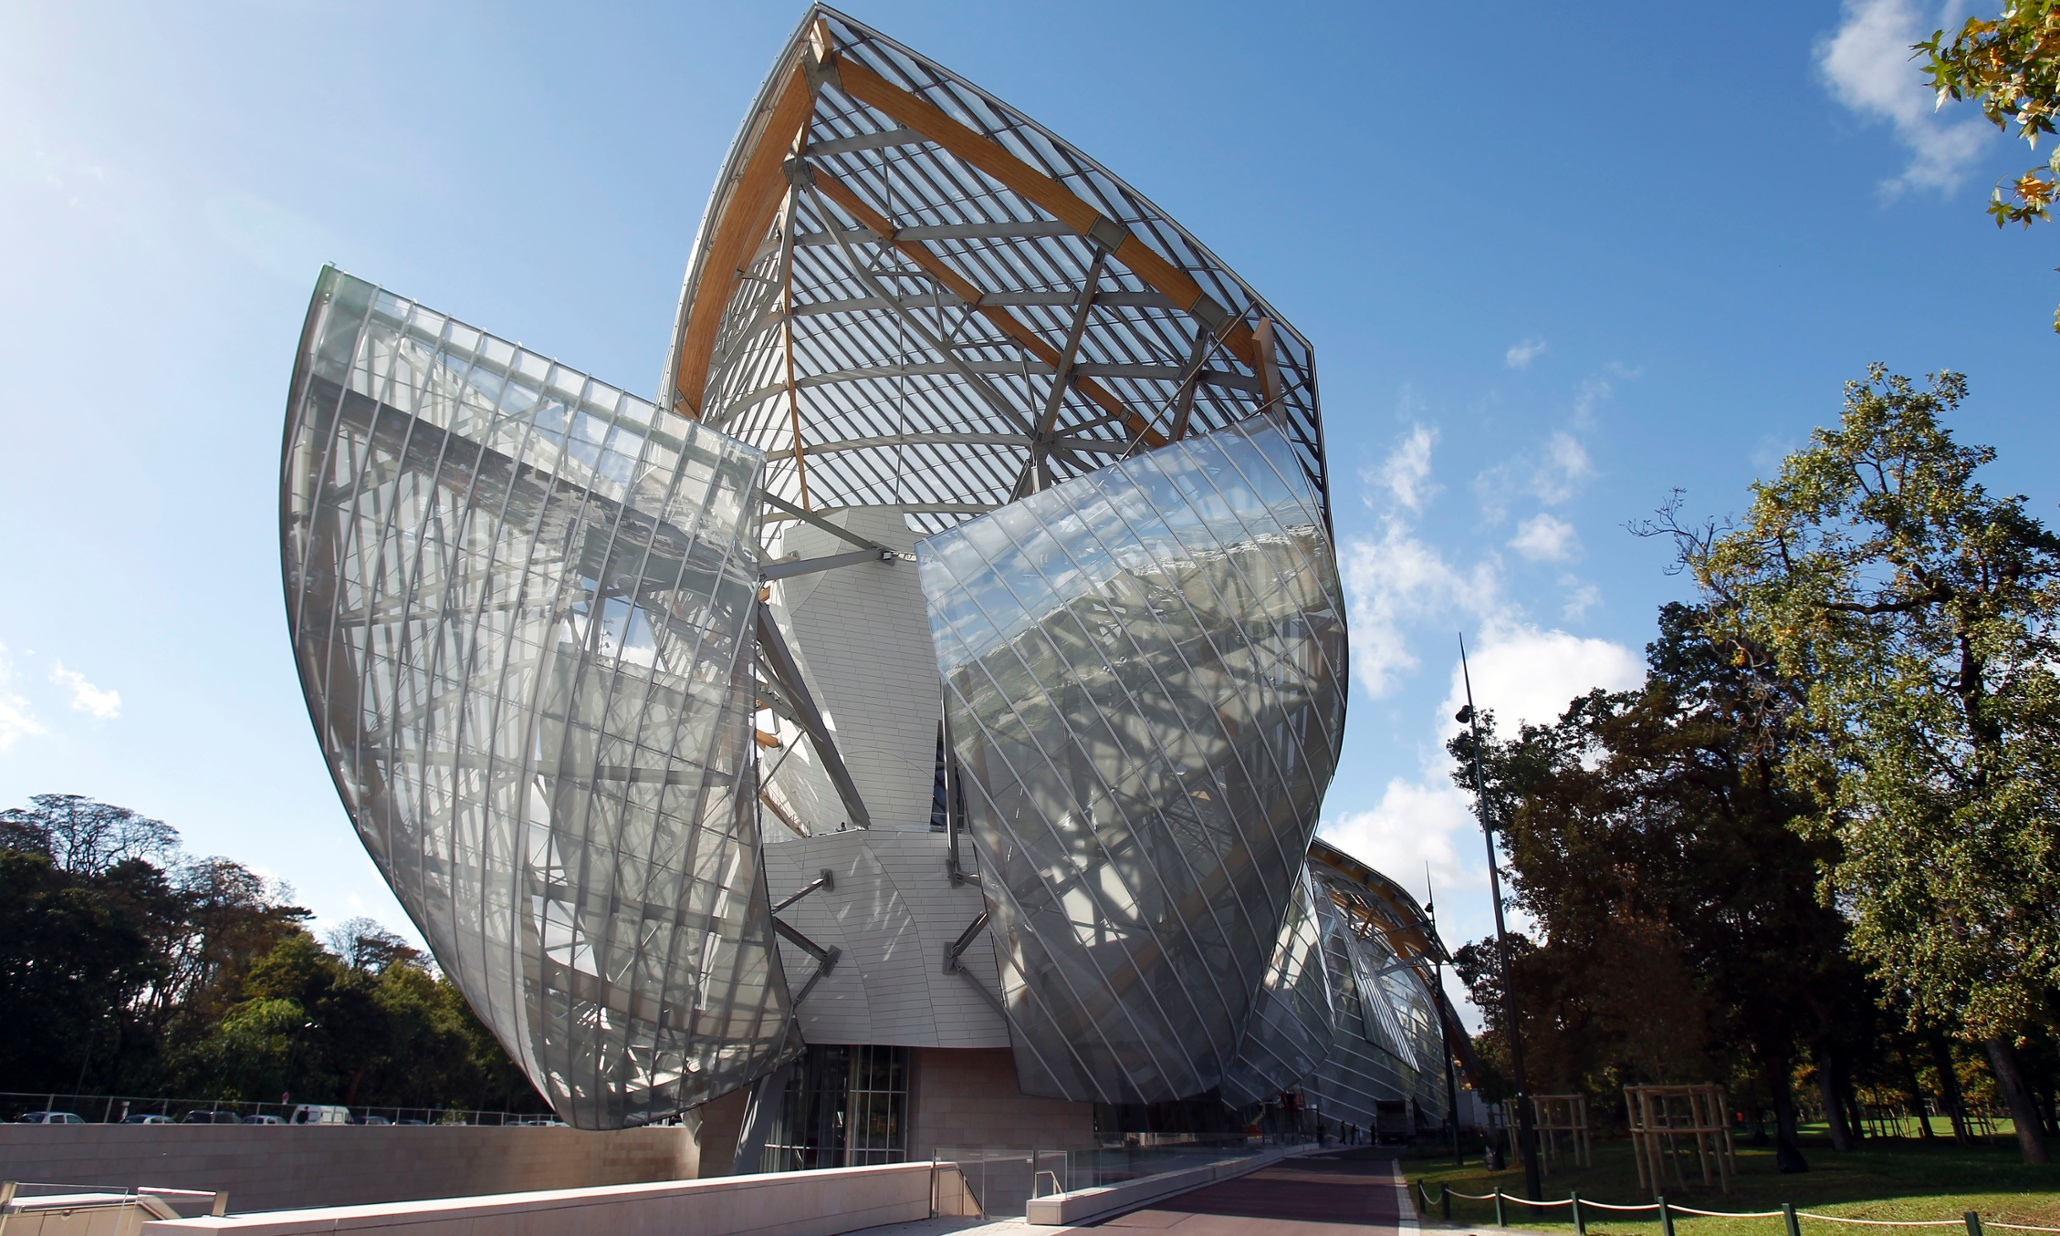 Fondation louis vuitton paris review everything and the bling from frank gehry art and - Frank gehry louis vuitton ...